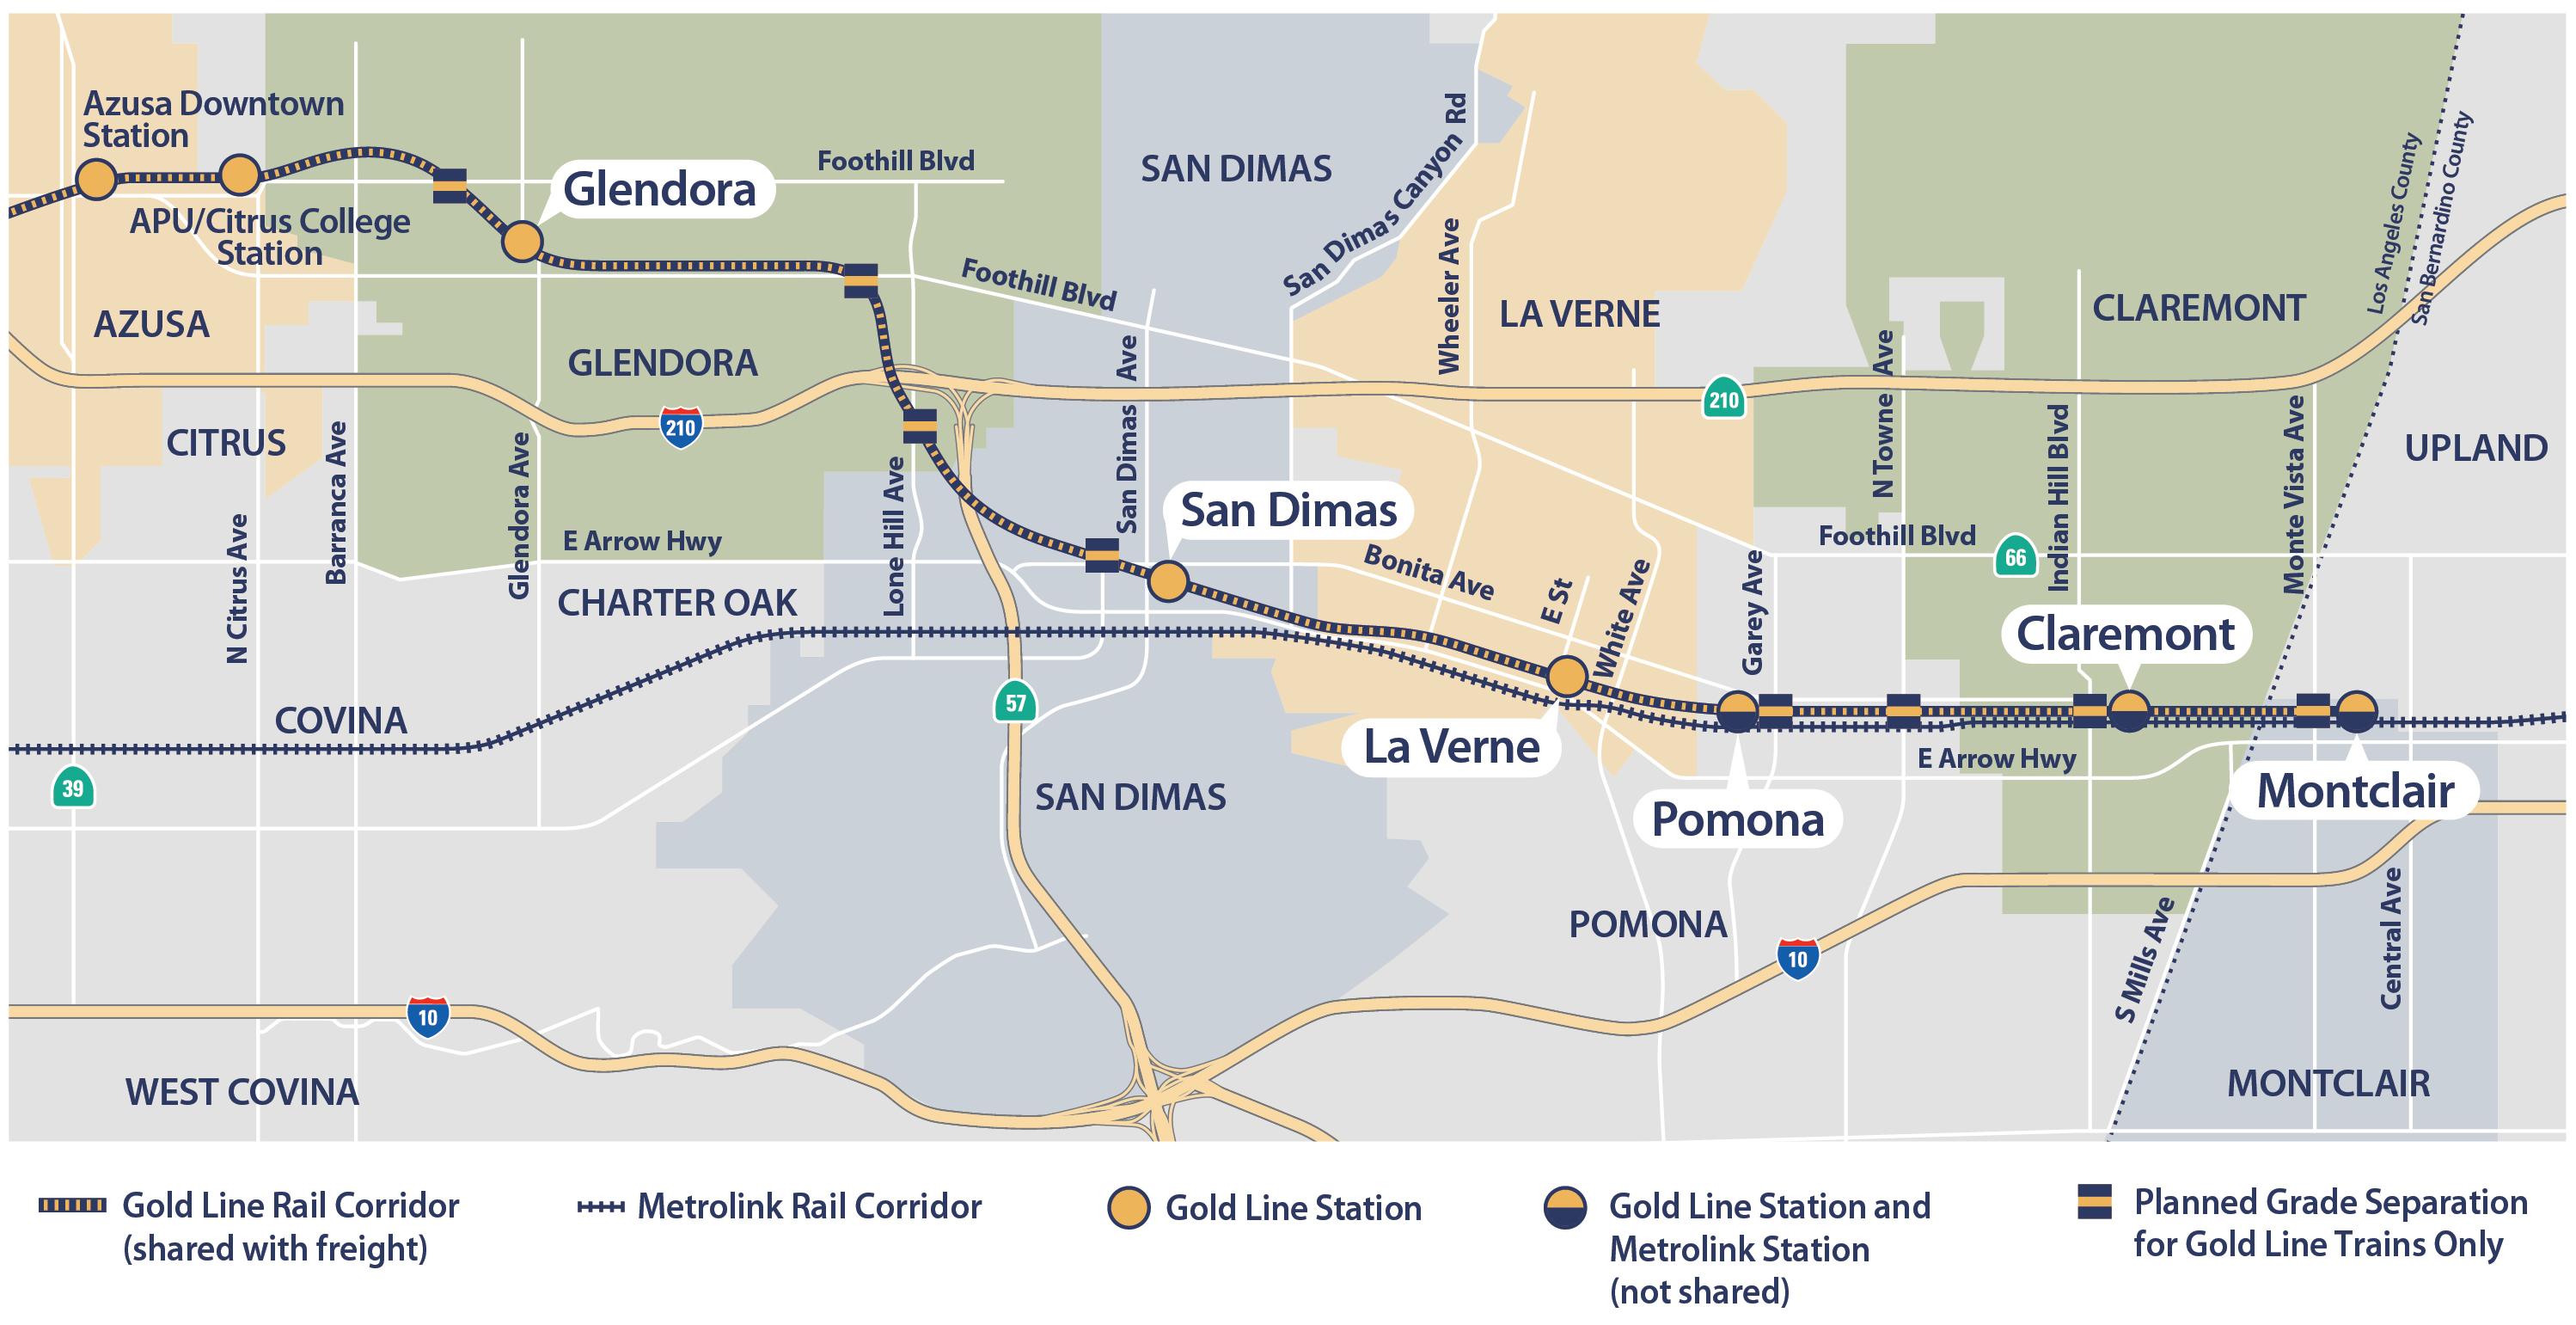 Metro Gold Line Extension Map Groundbreaking ceremony held for Gold Line extension to Claremont